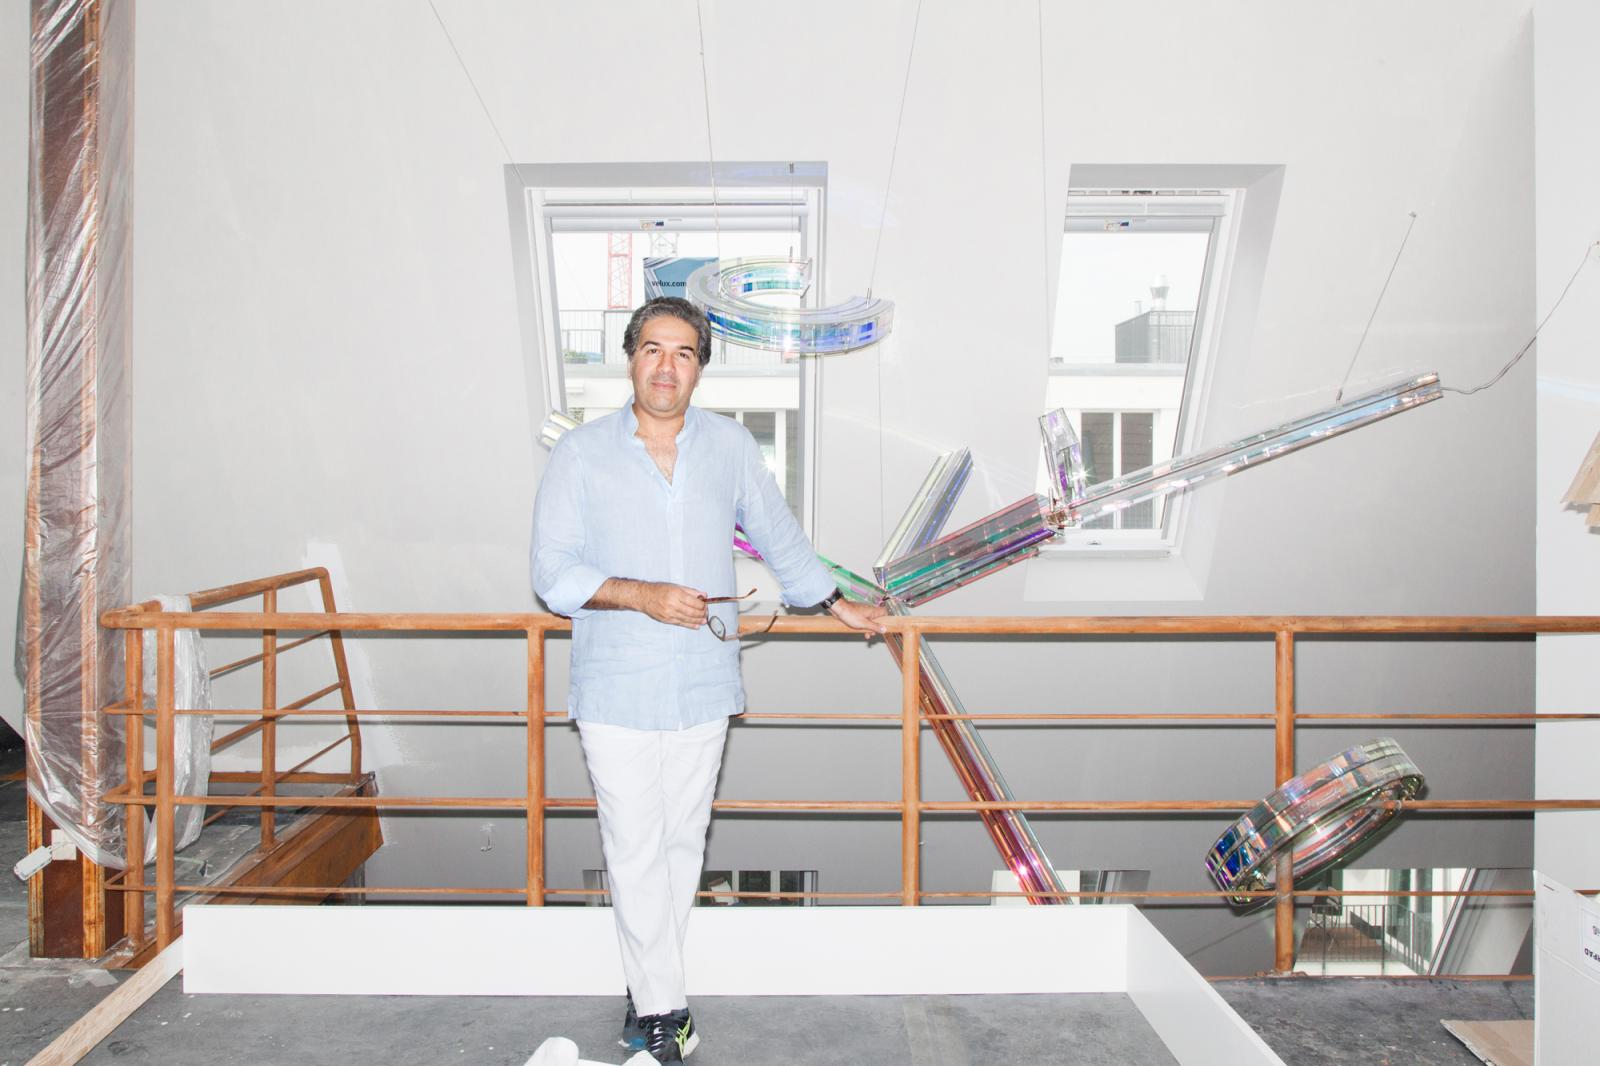 Ramin Salsali, founder & director of the Salsali Private Museum at his flat  in Berlin Background: /Scala Salsali/ by Susanne Rottenbacher